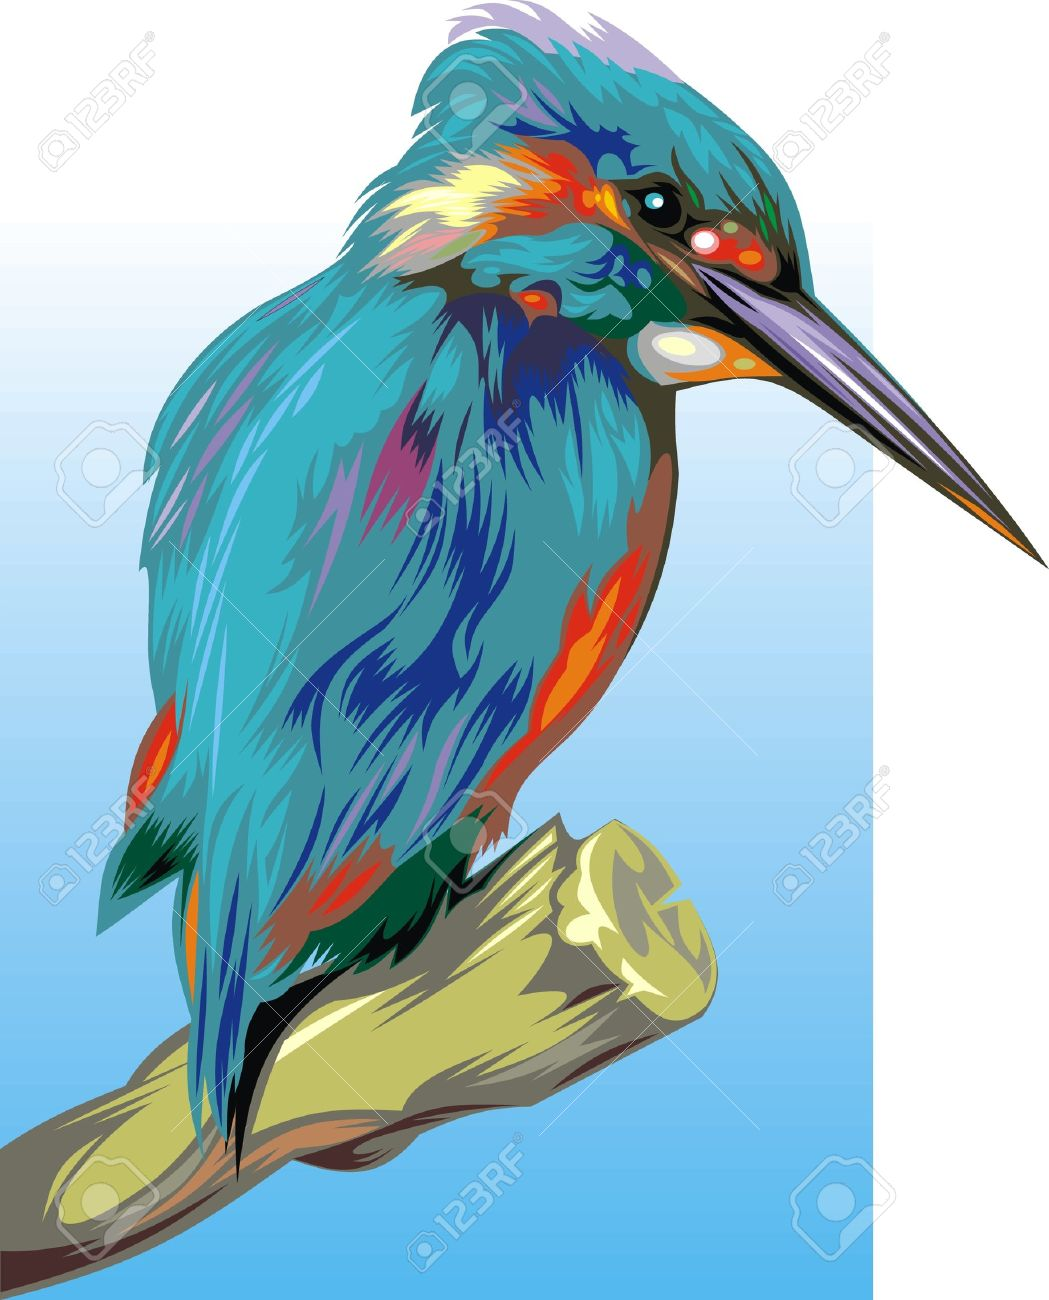 Nice Illustrated Kingfisher On The Blue And White Background.